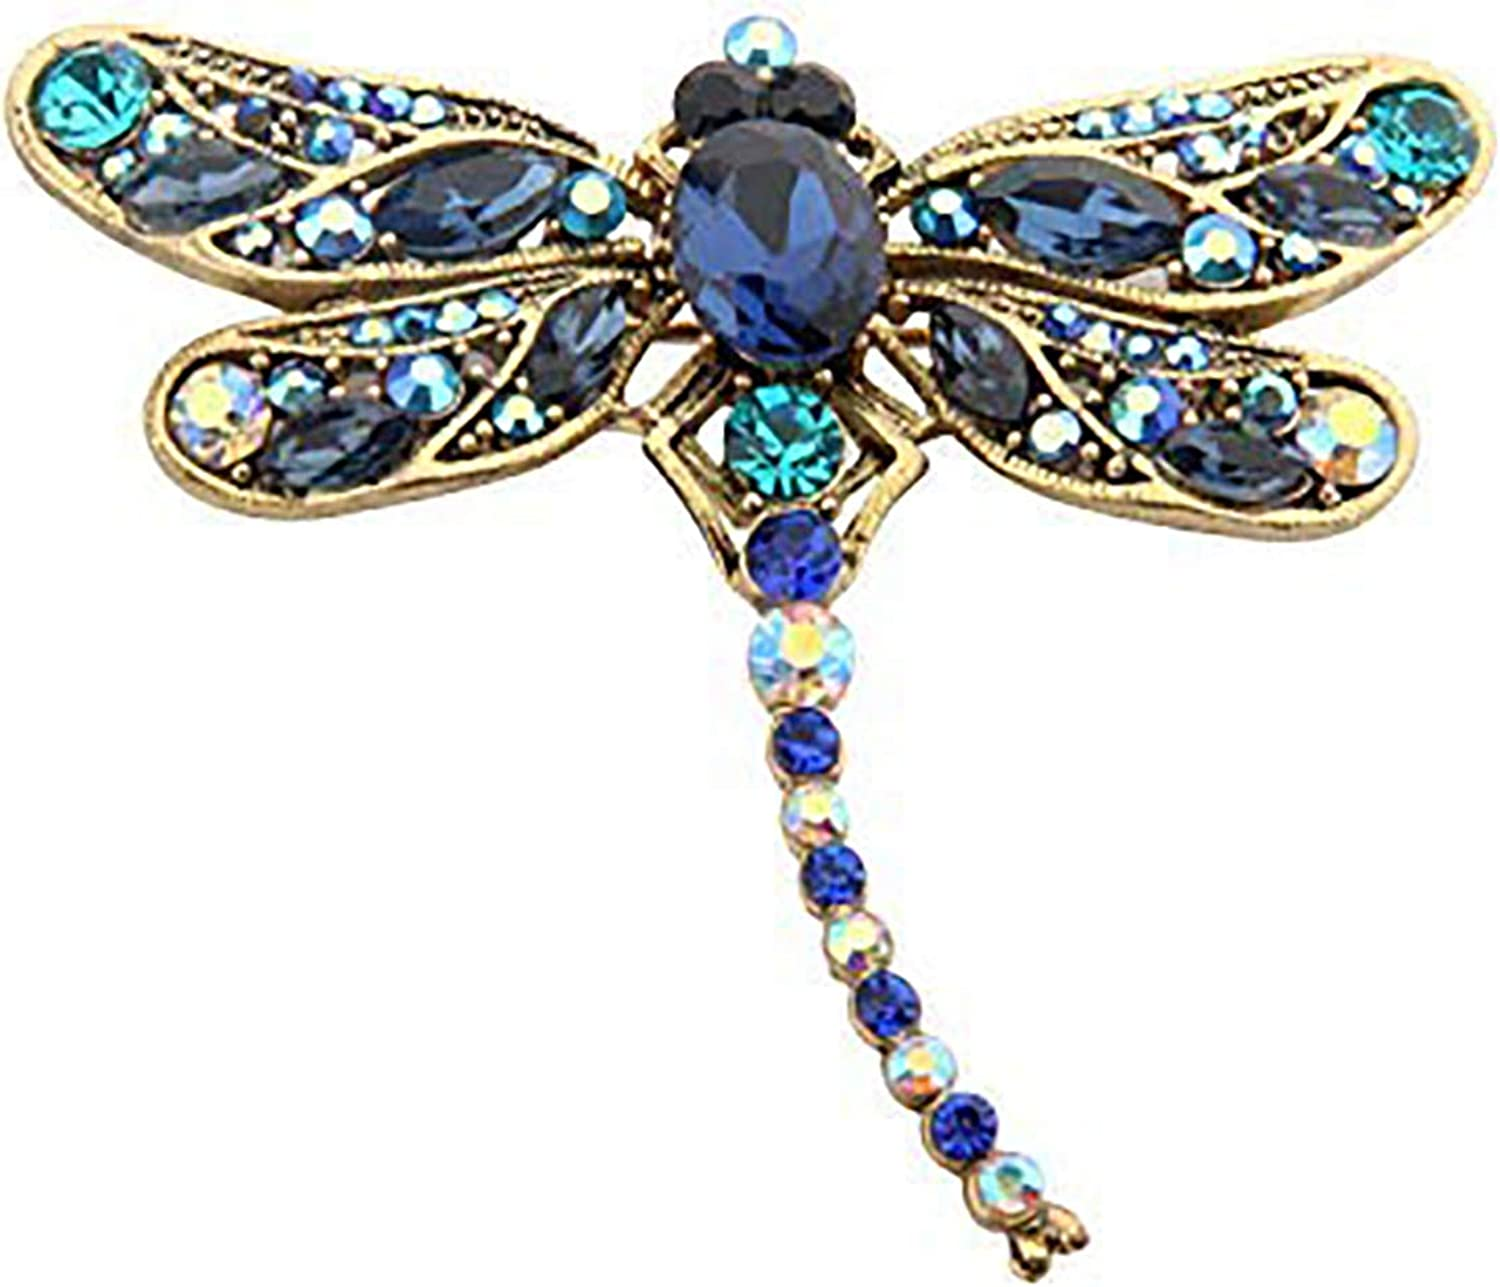 FEELMEM Colorful Dragonfly Brooch Pin Dragonfly Insect Animal Brooch Pin Crystal Rhinestone Scarf Pin Jewelry